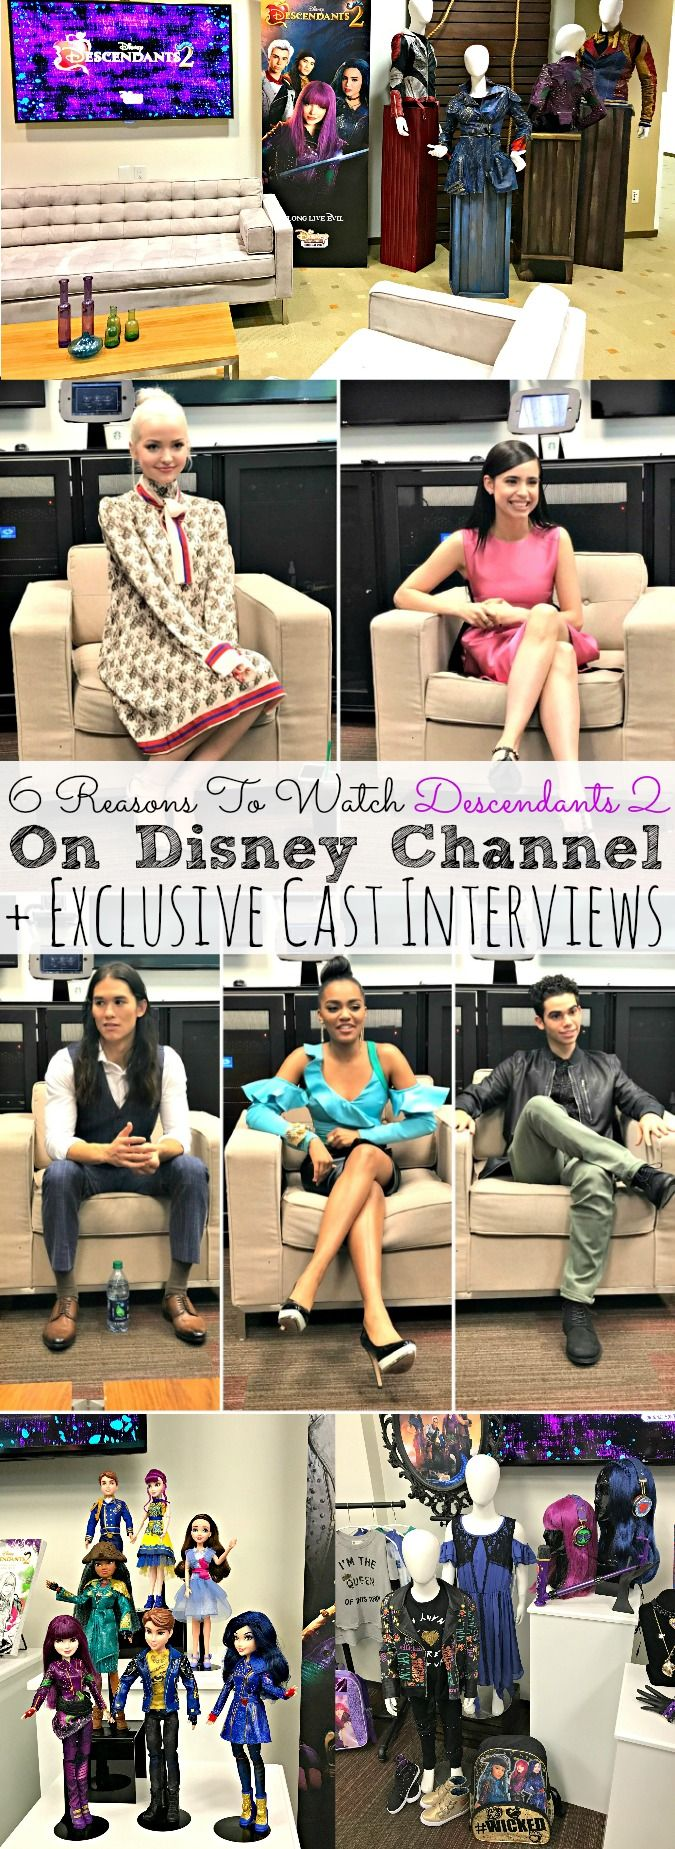 6 Reasons To Watch Descendants 2 On Disney Channel + Exclusive Cast Interviews- abccreativelearning.com